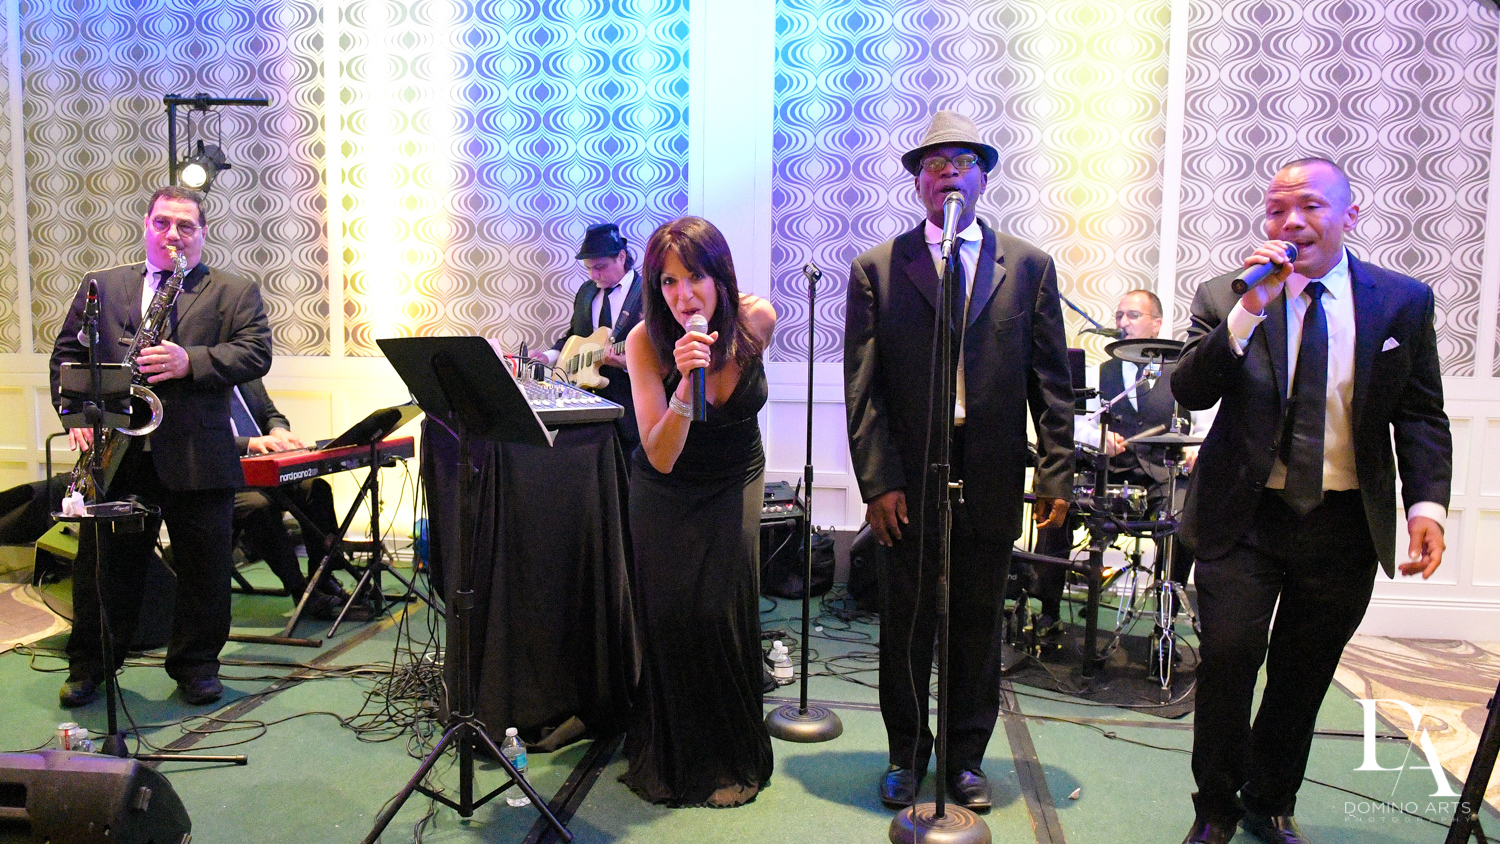 Live music band at Romantic Wedding Woodfield Country Club in Boca Raton, Florida by Domino Arts Photography